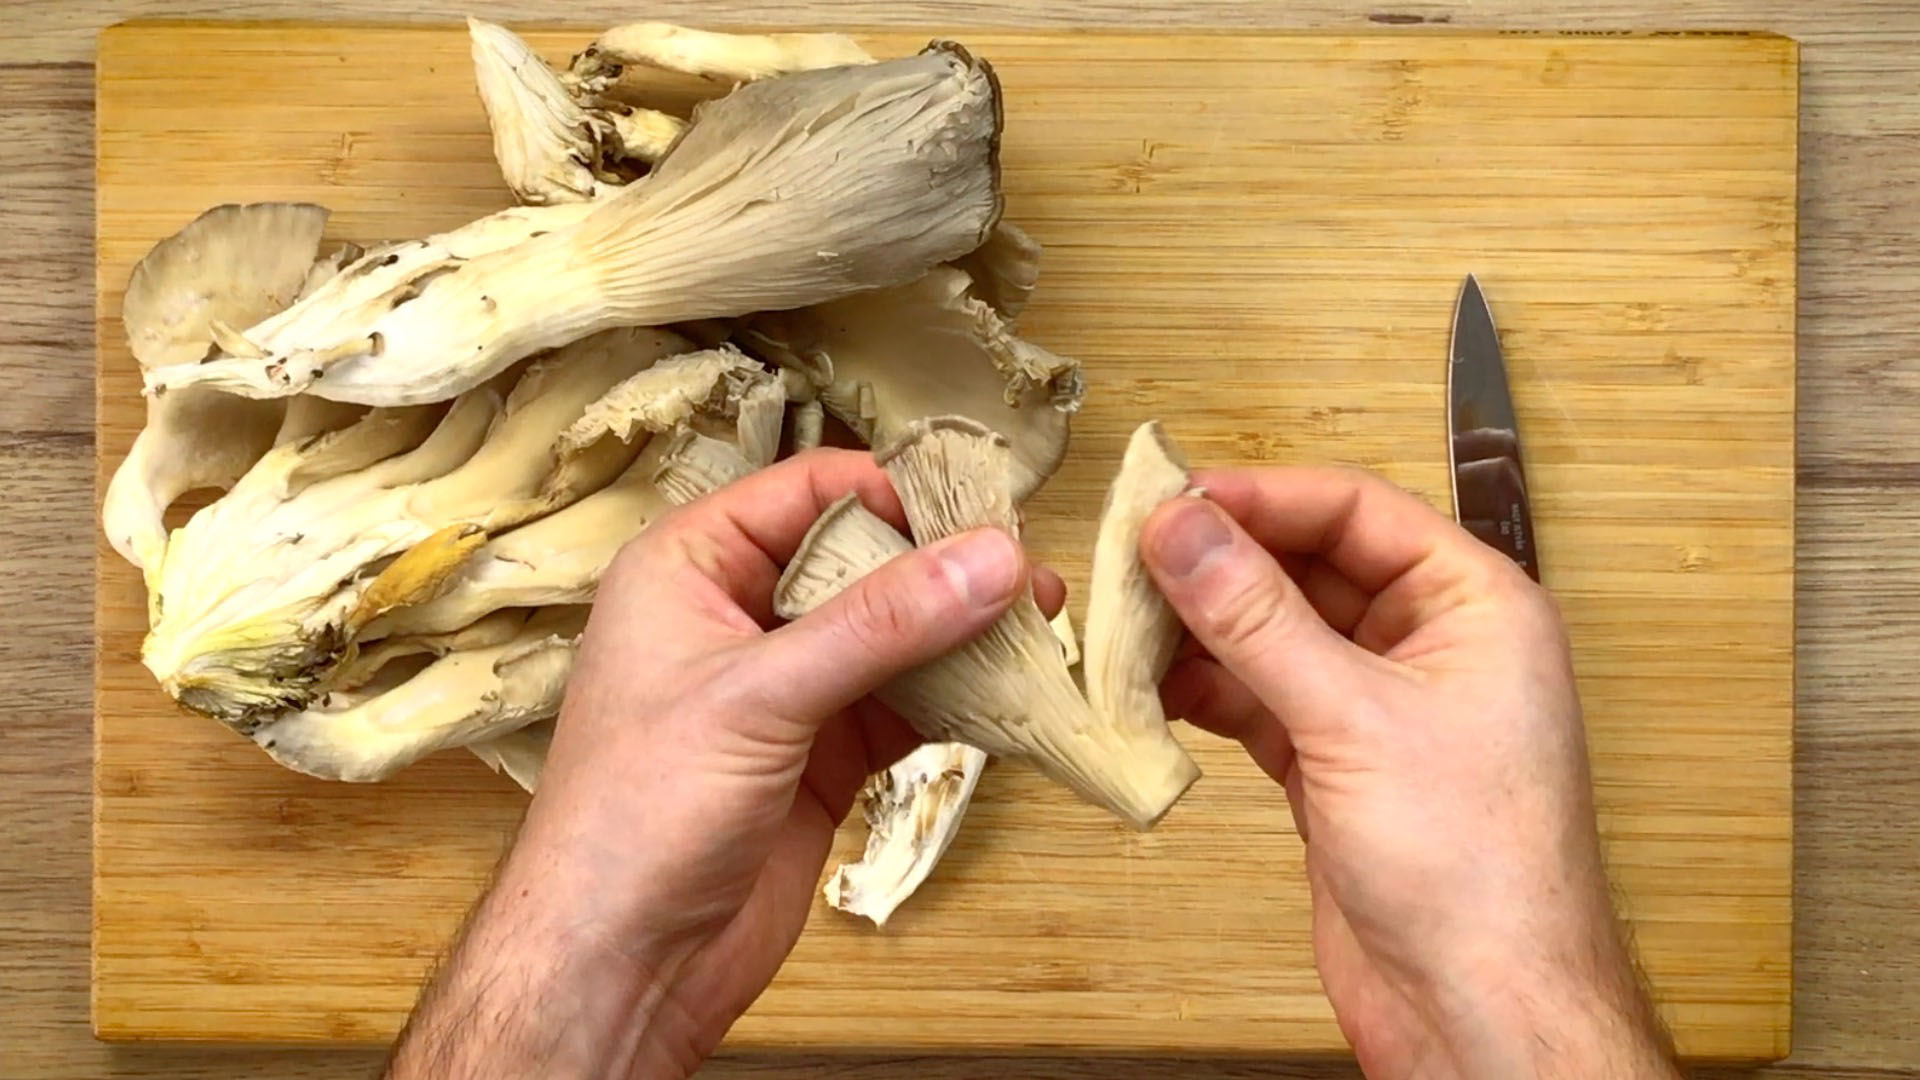 White mushrooms on a wooden cutting board. A hand is tearing apart the cap.